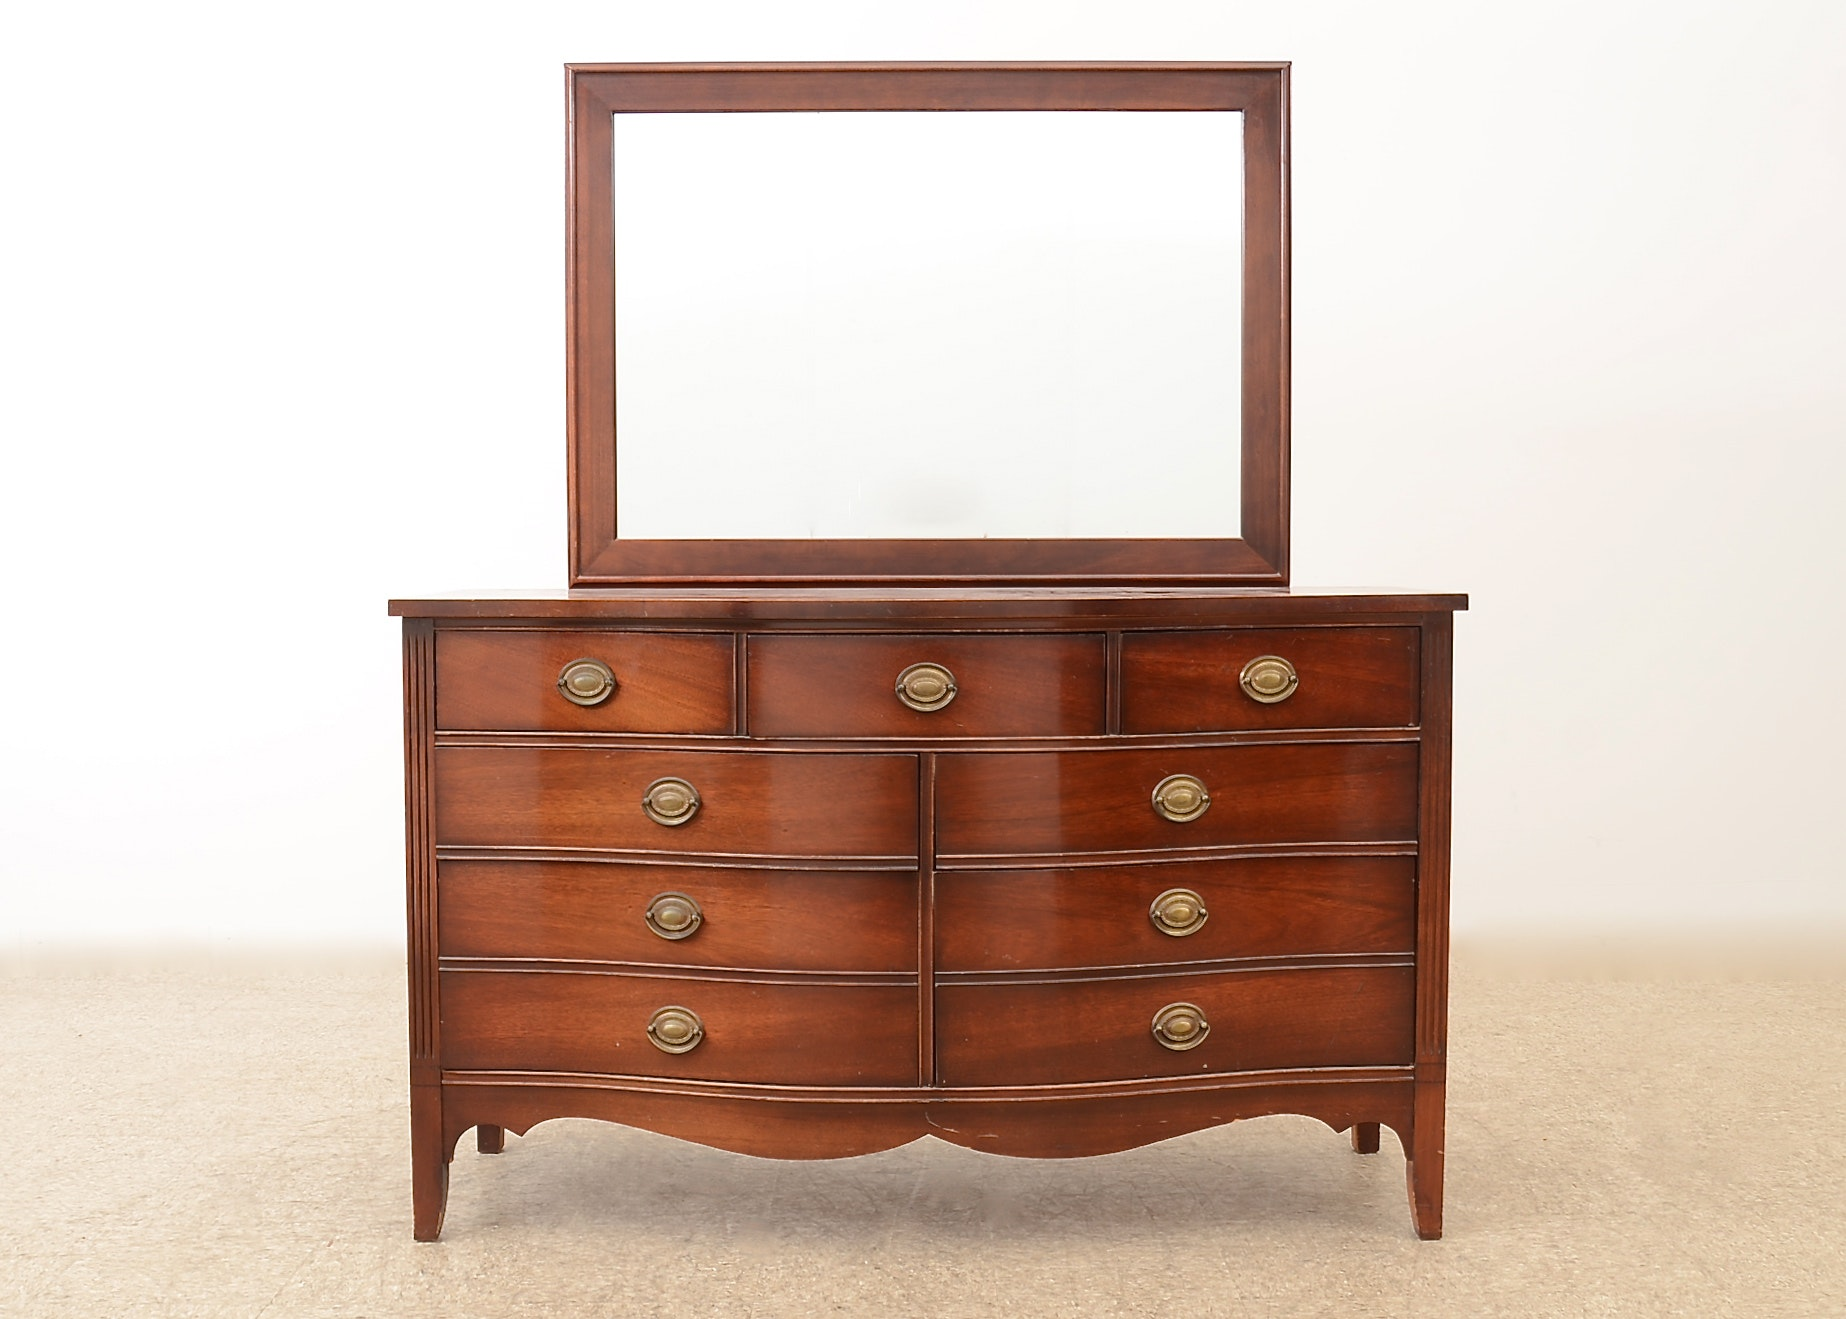 Federal Style Serpentine Front Dresser By Dixie Furniture ...